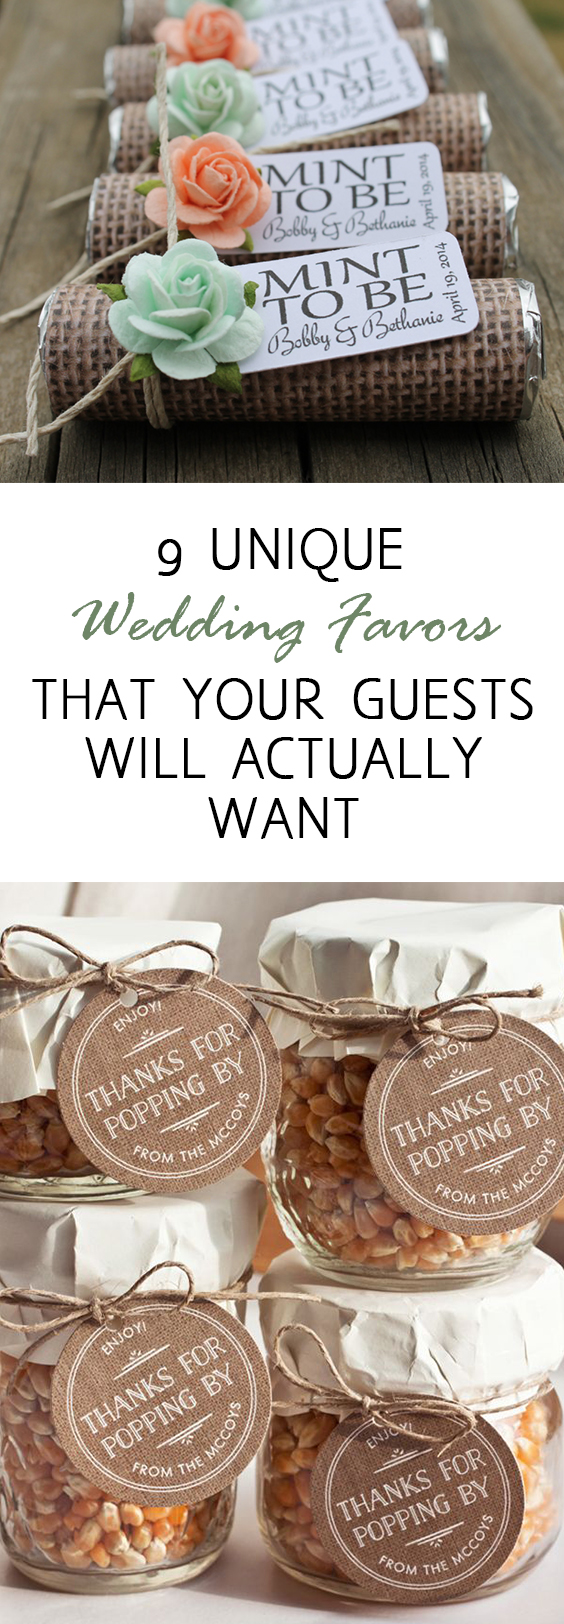 9 Unique Wedding Favors that Your Guests Will Actually Want  Oh My Veilall things wedding